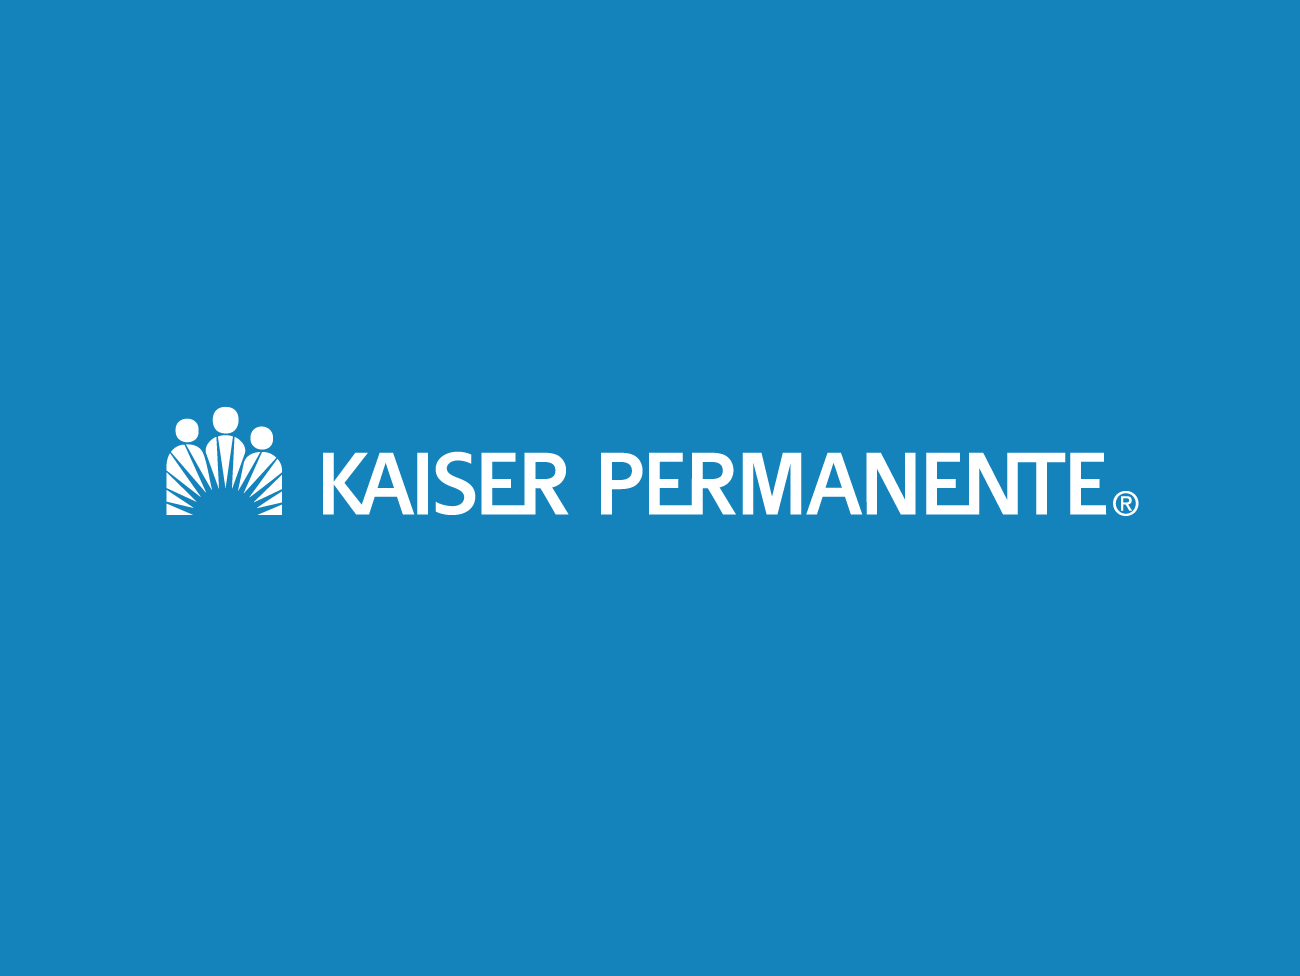 Image for Kaiser Permanente leans forward in stand on racial and social justice